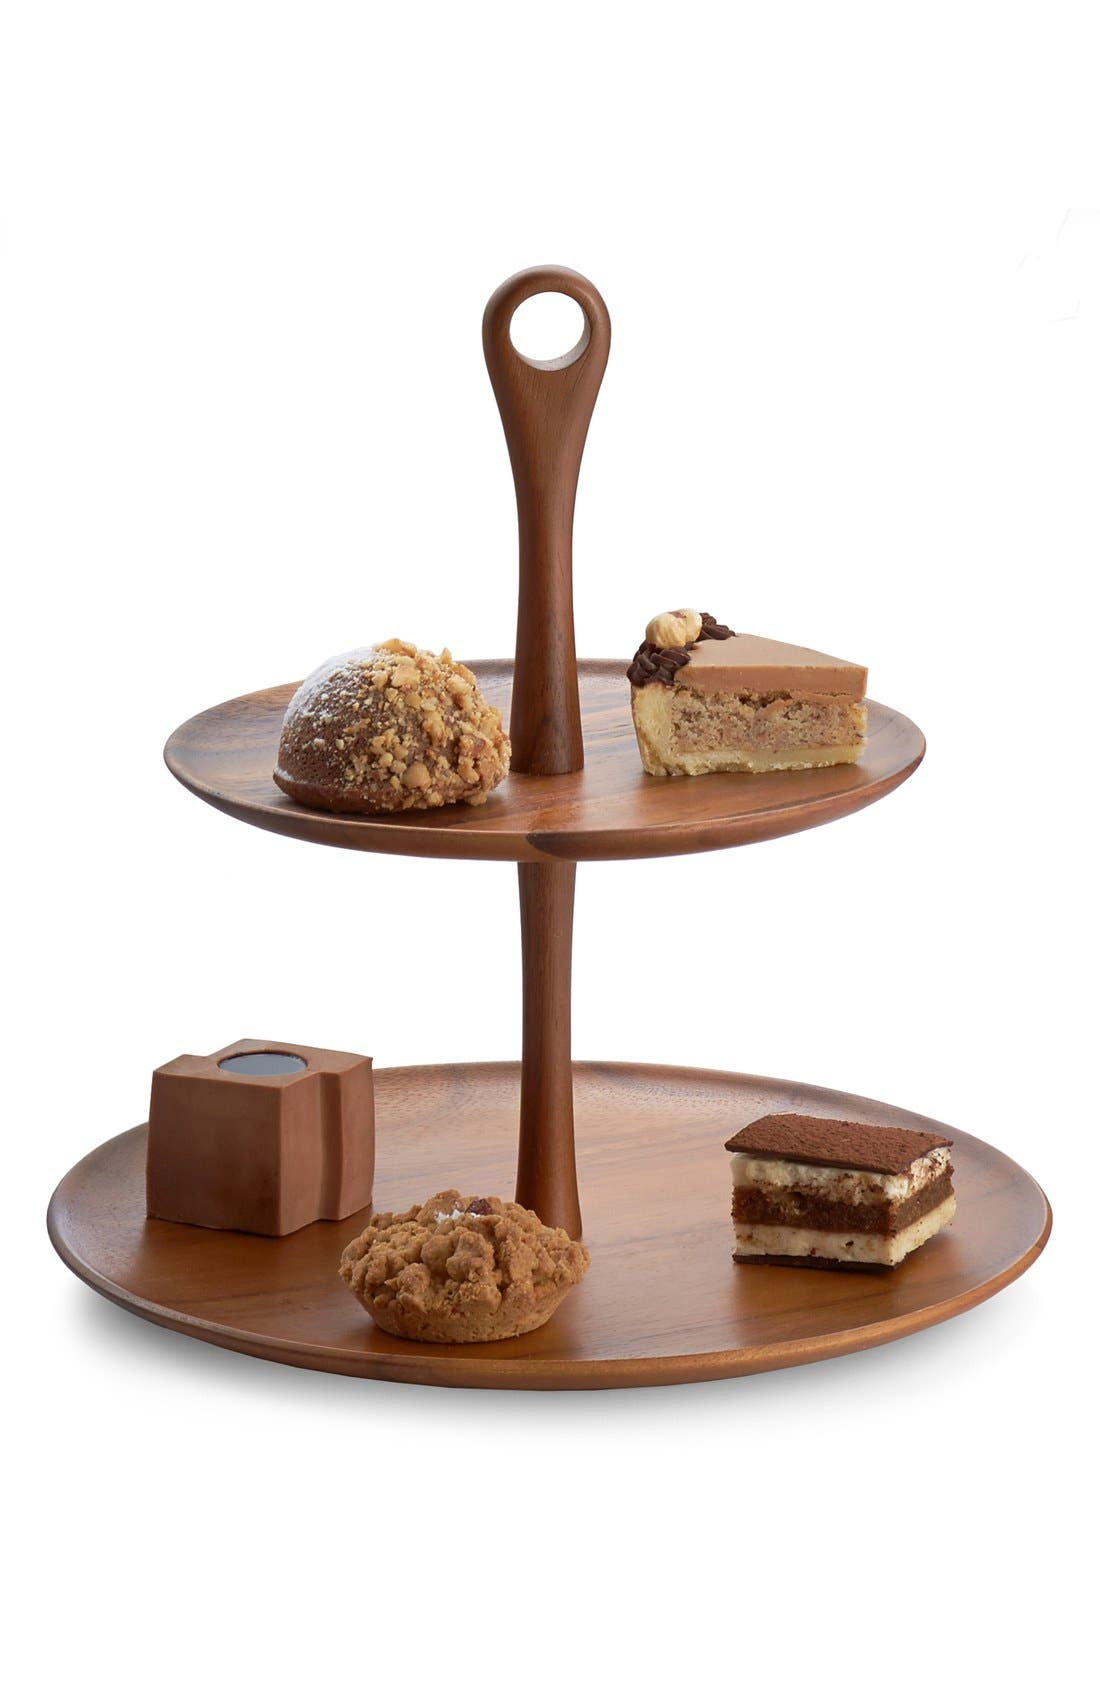 Alternate Image 1 Selected - Nambé 'The Skye Collection' Wood Tiered Dessert Stand